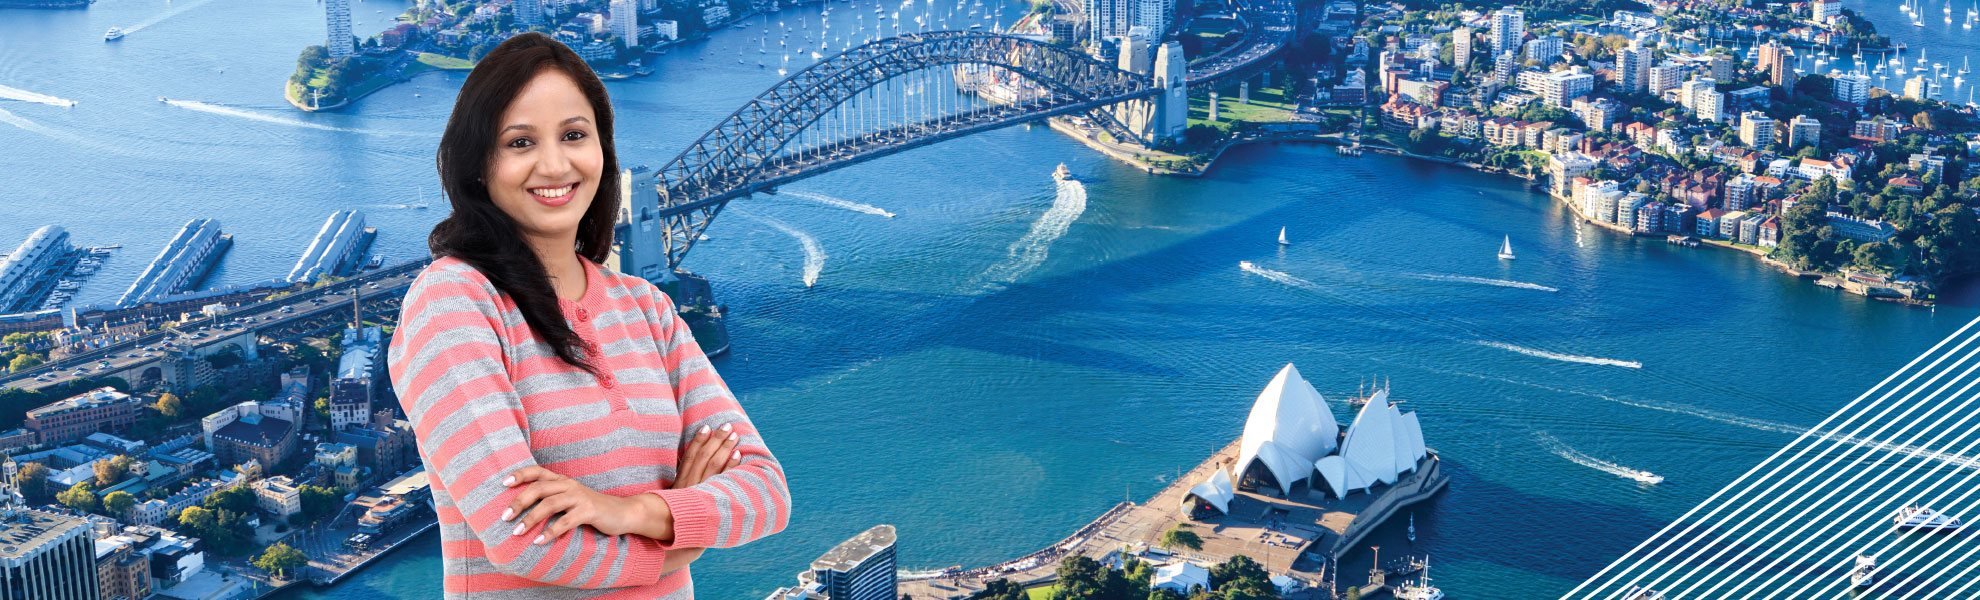 Building you up to study abroad